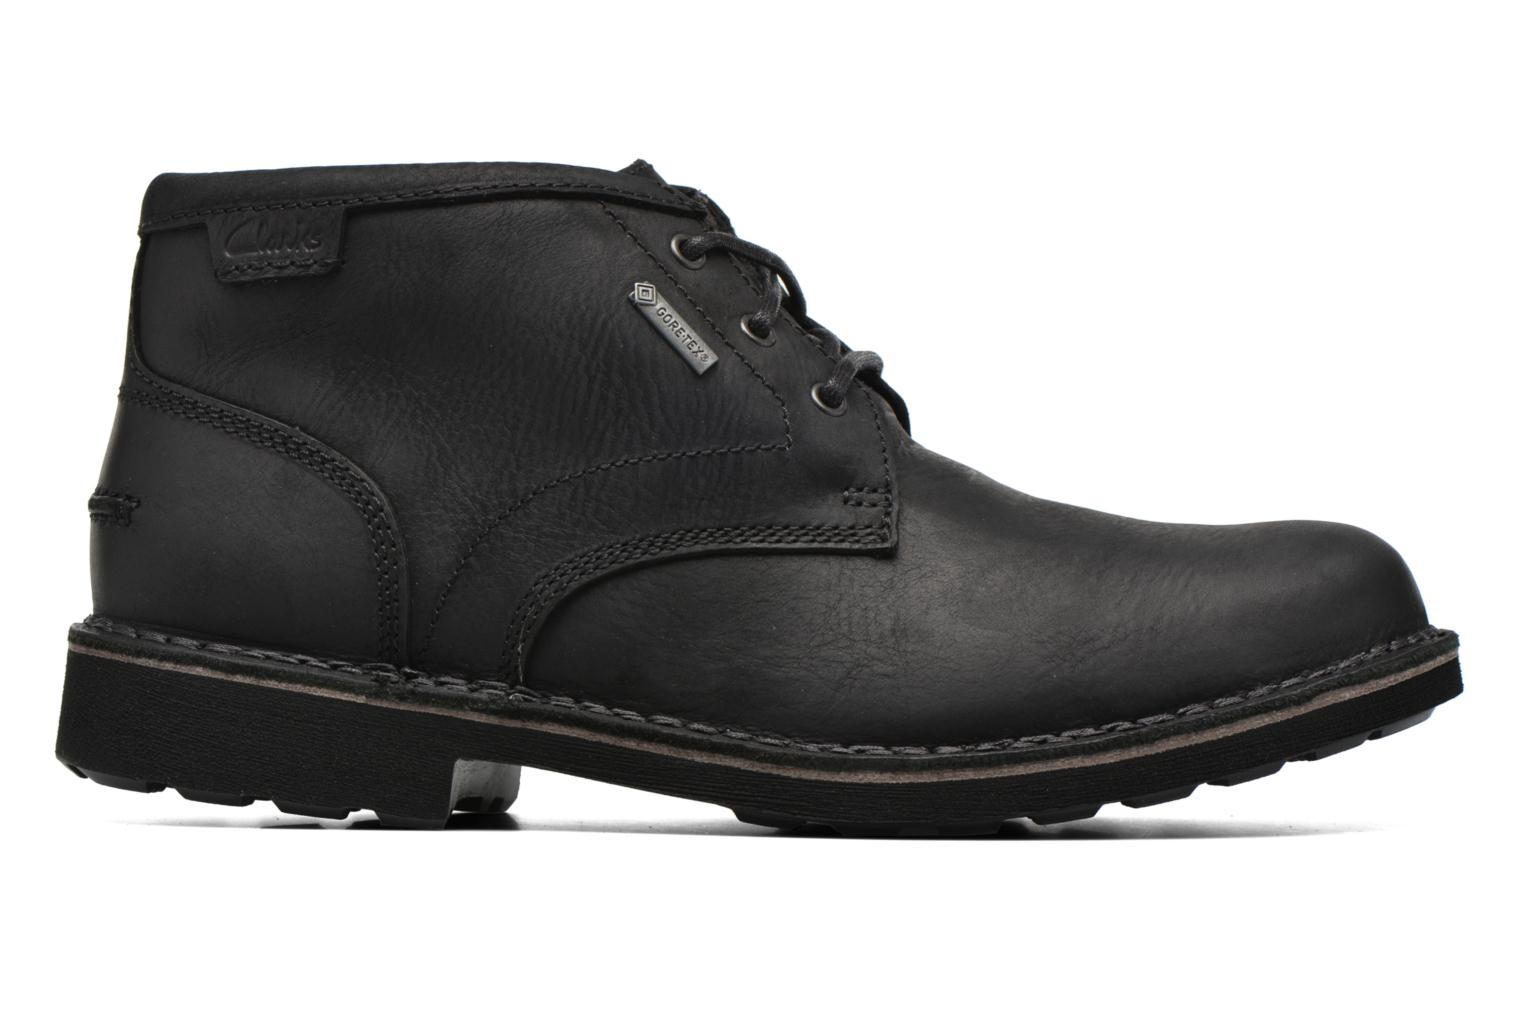 Lawes Mid GTX Black leather